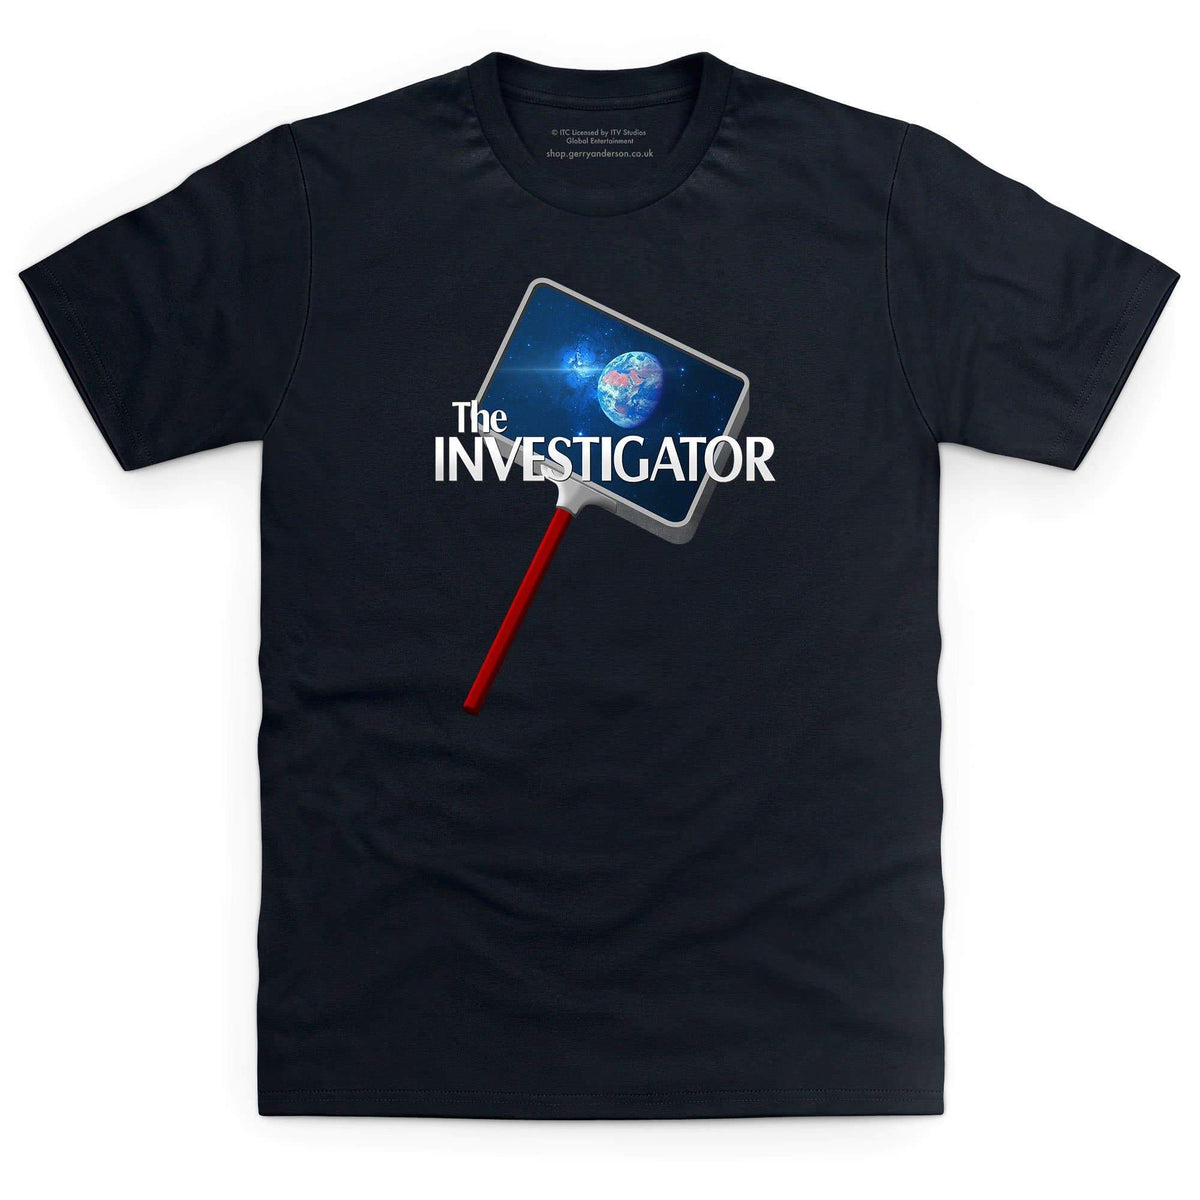 The Investigator Men's T-Shirt [Official & Exclusive] - The Gerry Anderson Store